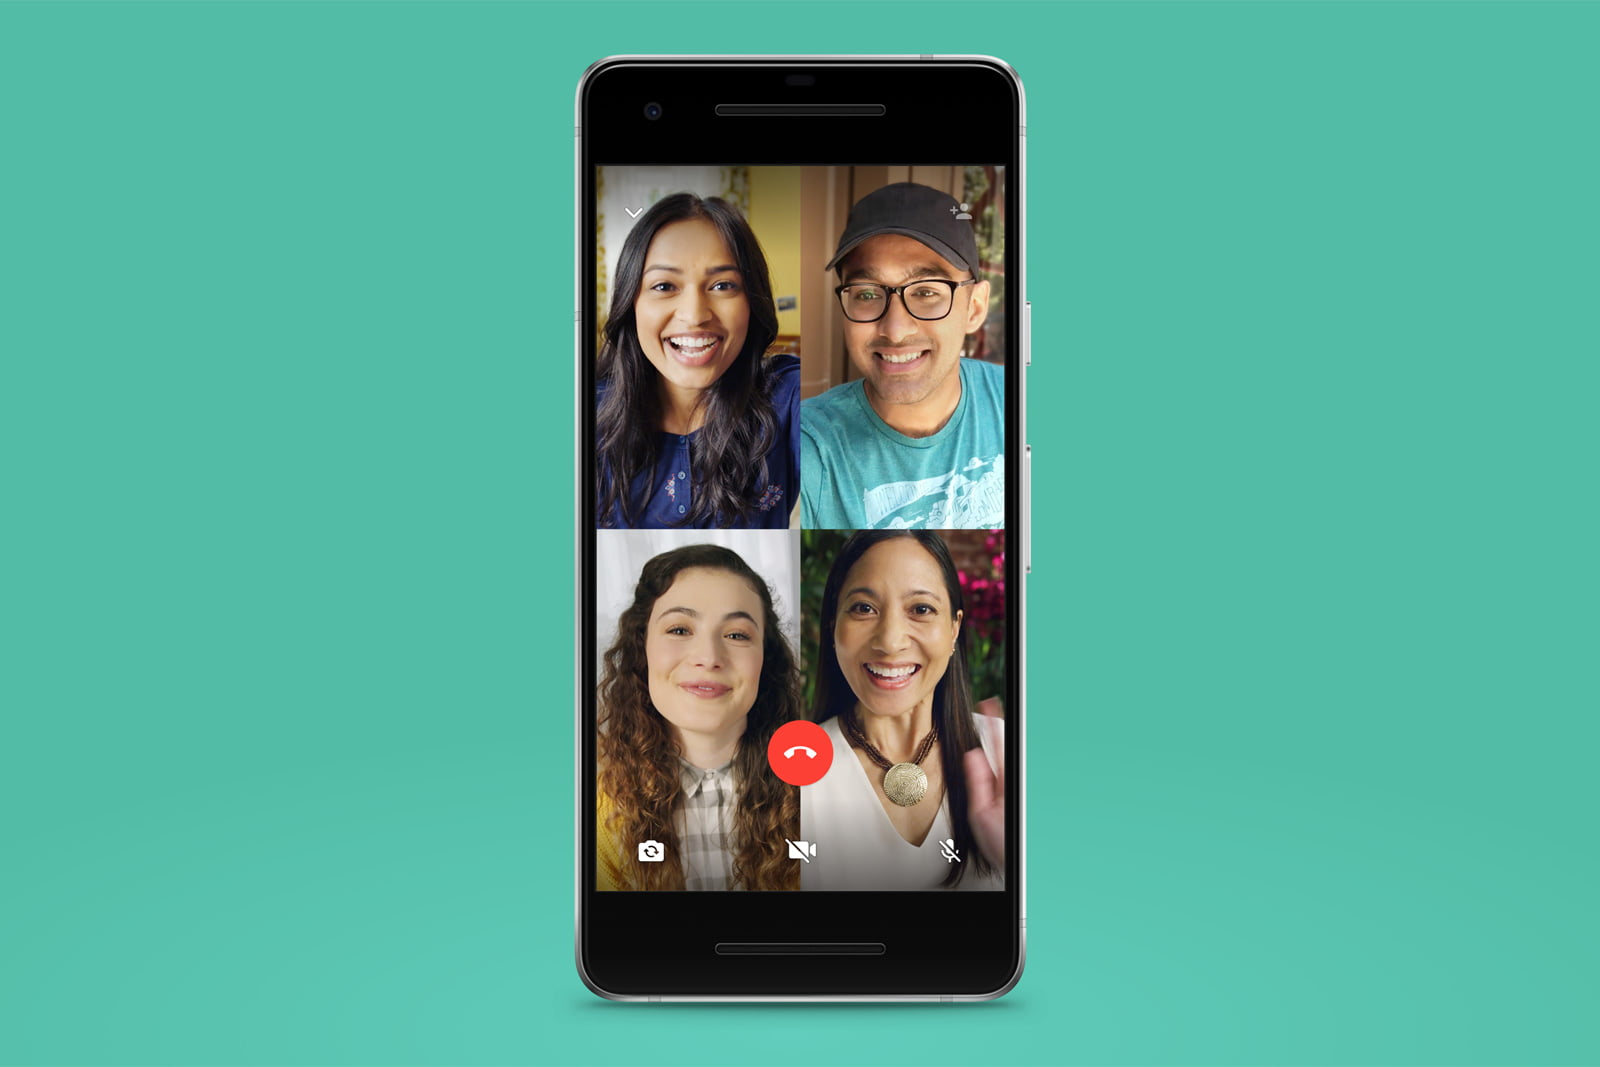 How to use a TV to view WhatsApp video calls?